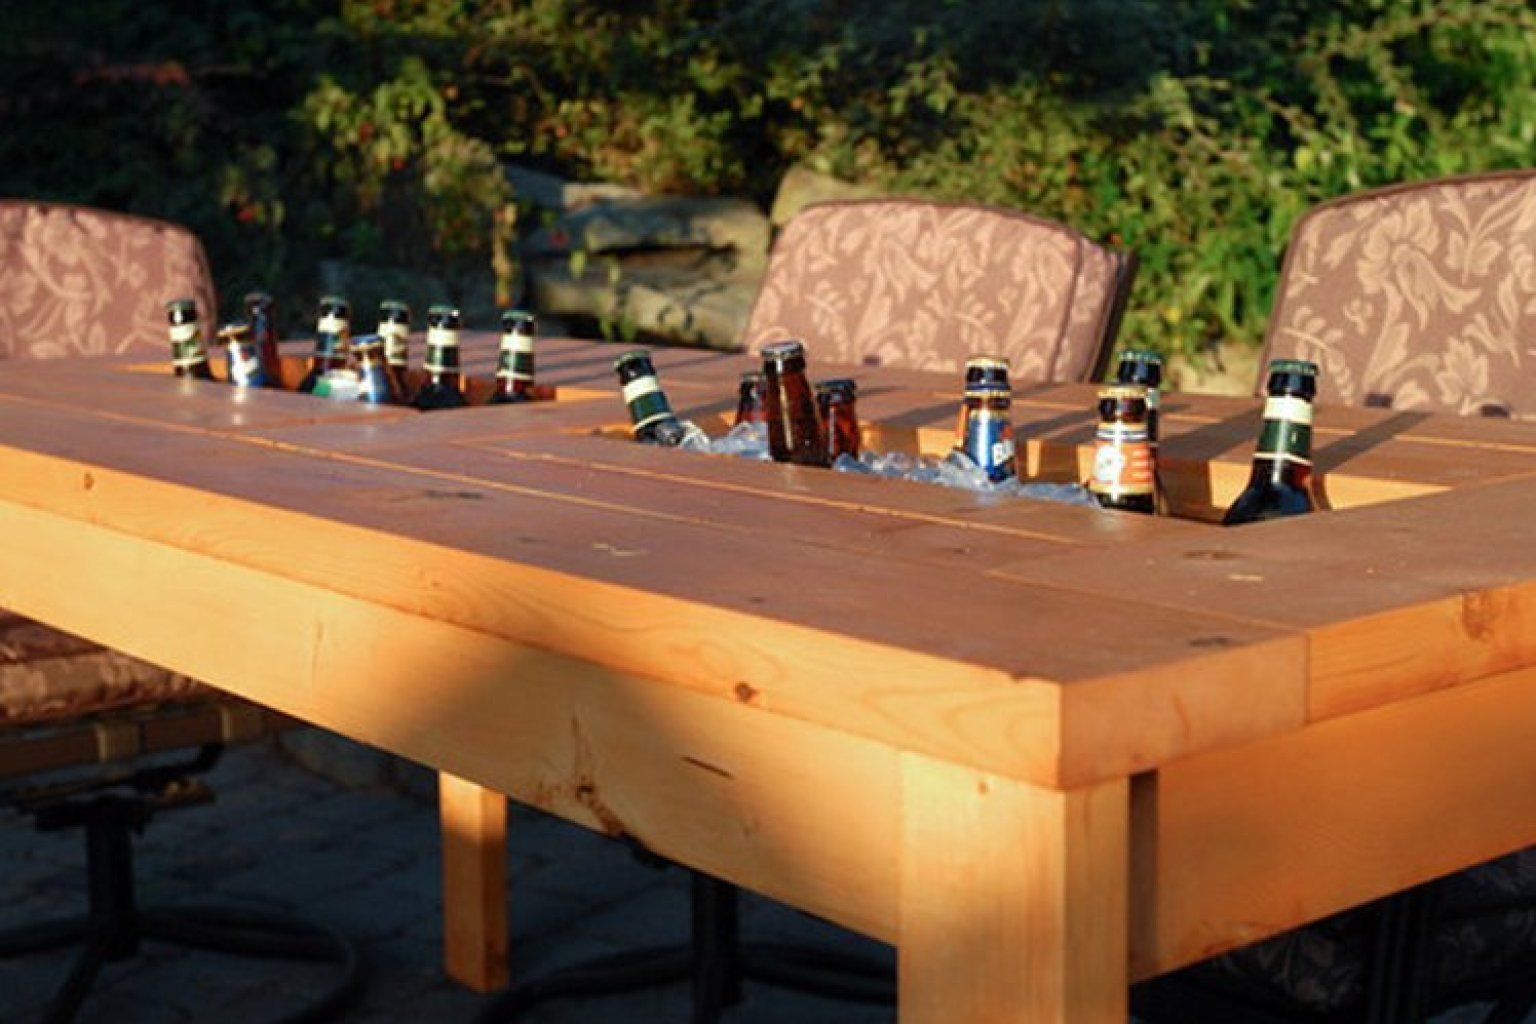 Table Drinks Cooler A Diy Table With Built In Drink Coolers Is The Perfect Way To Beat